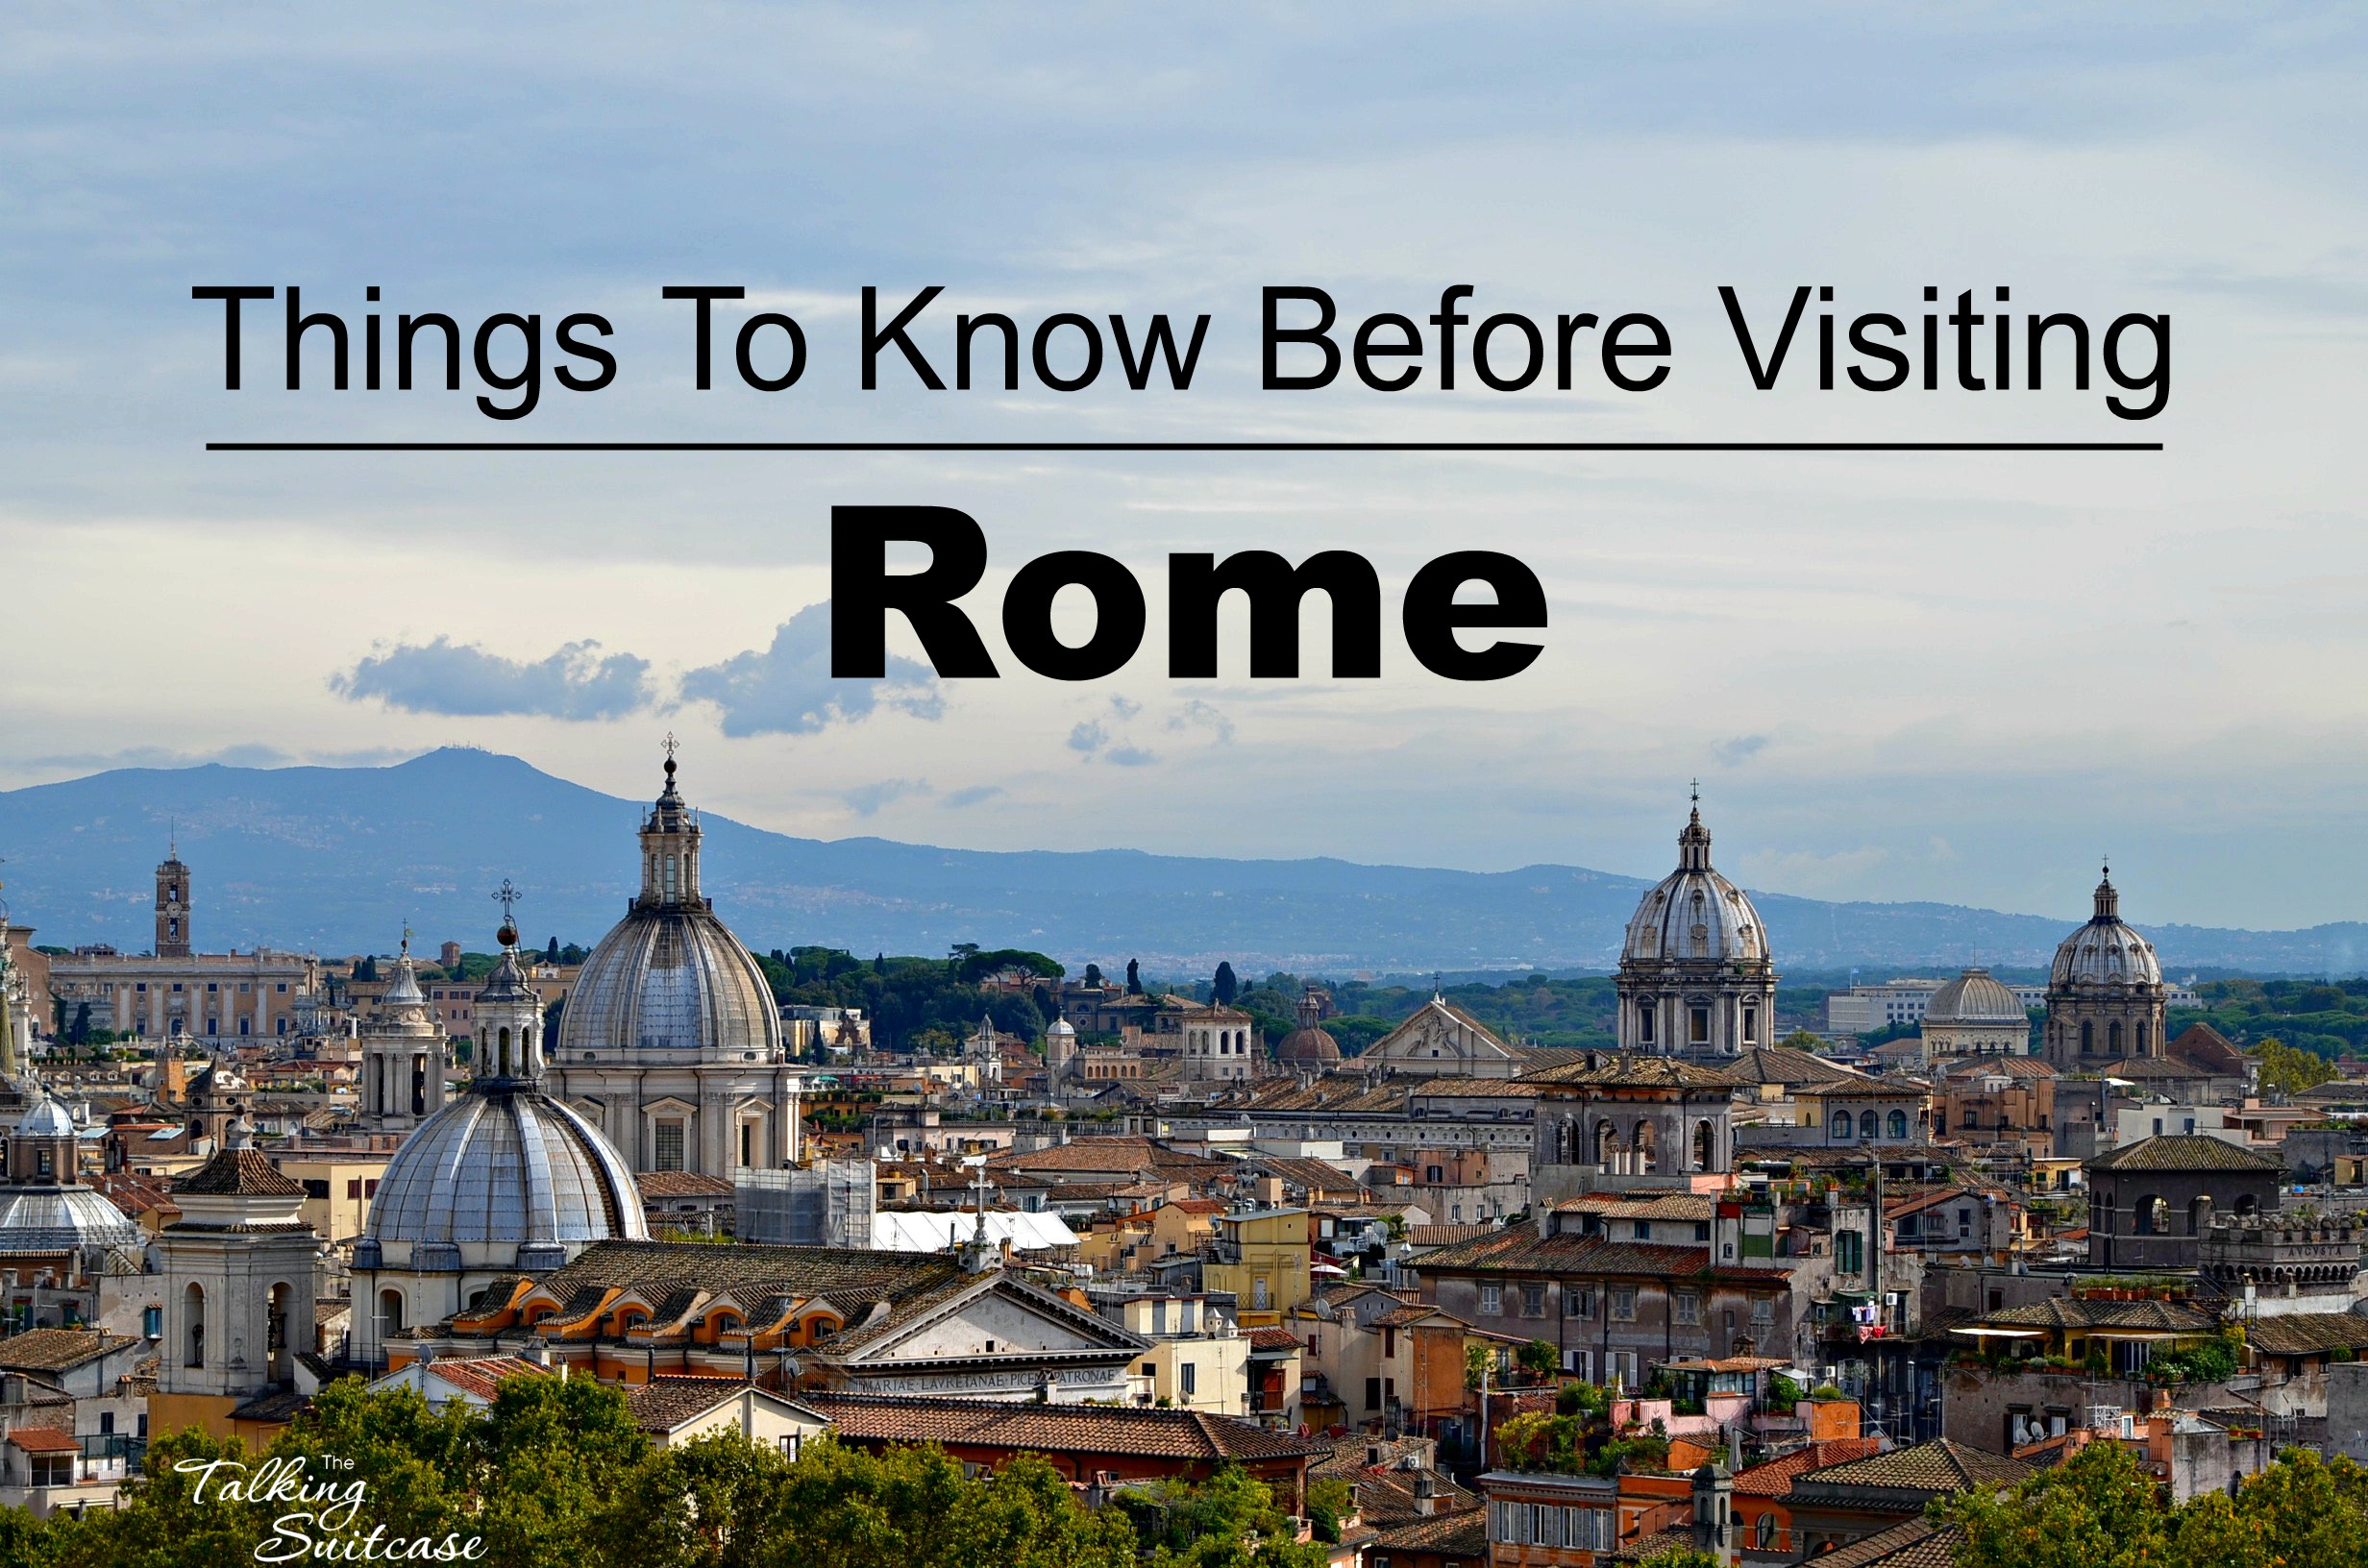 Things To Know Before Visiting Rome The Talking Suitcase - 10 safety tips for travelers to rome